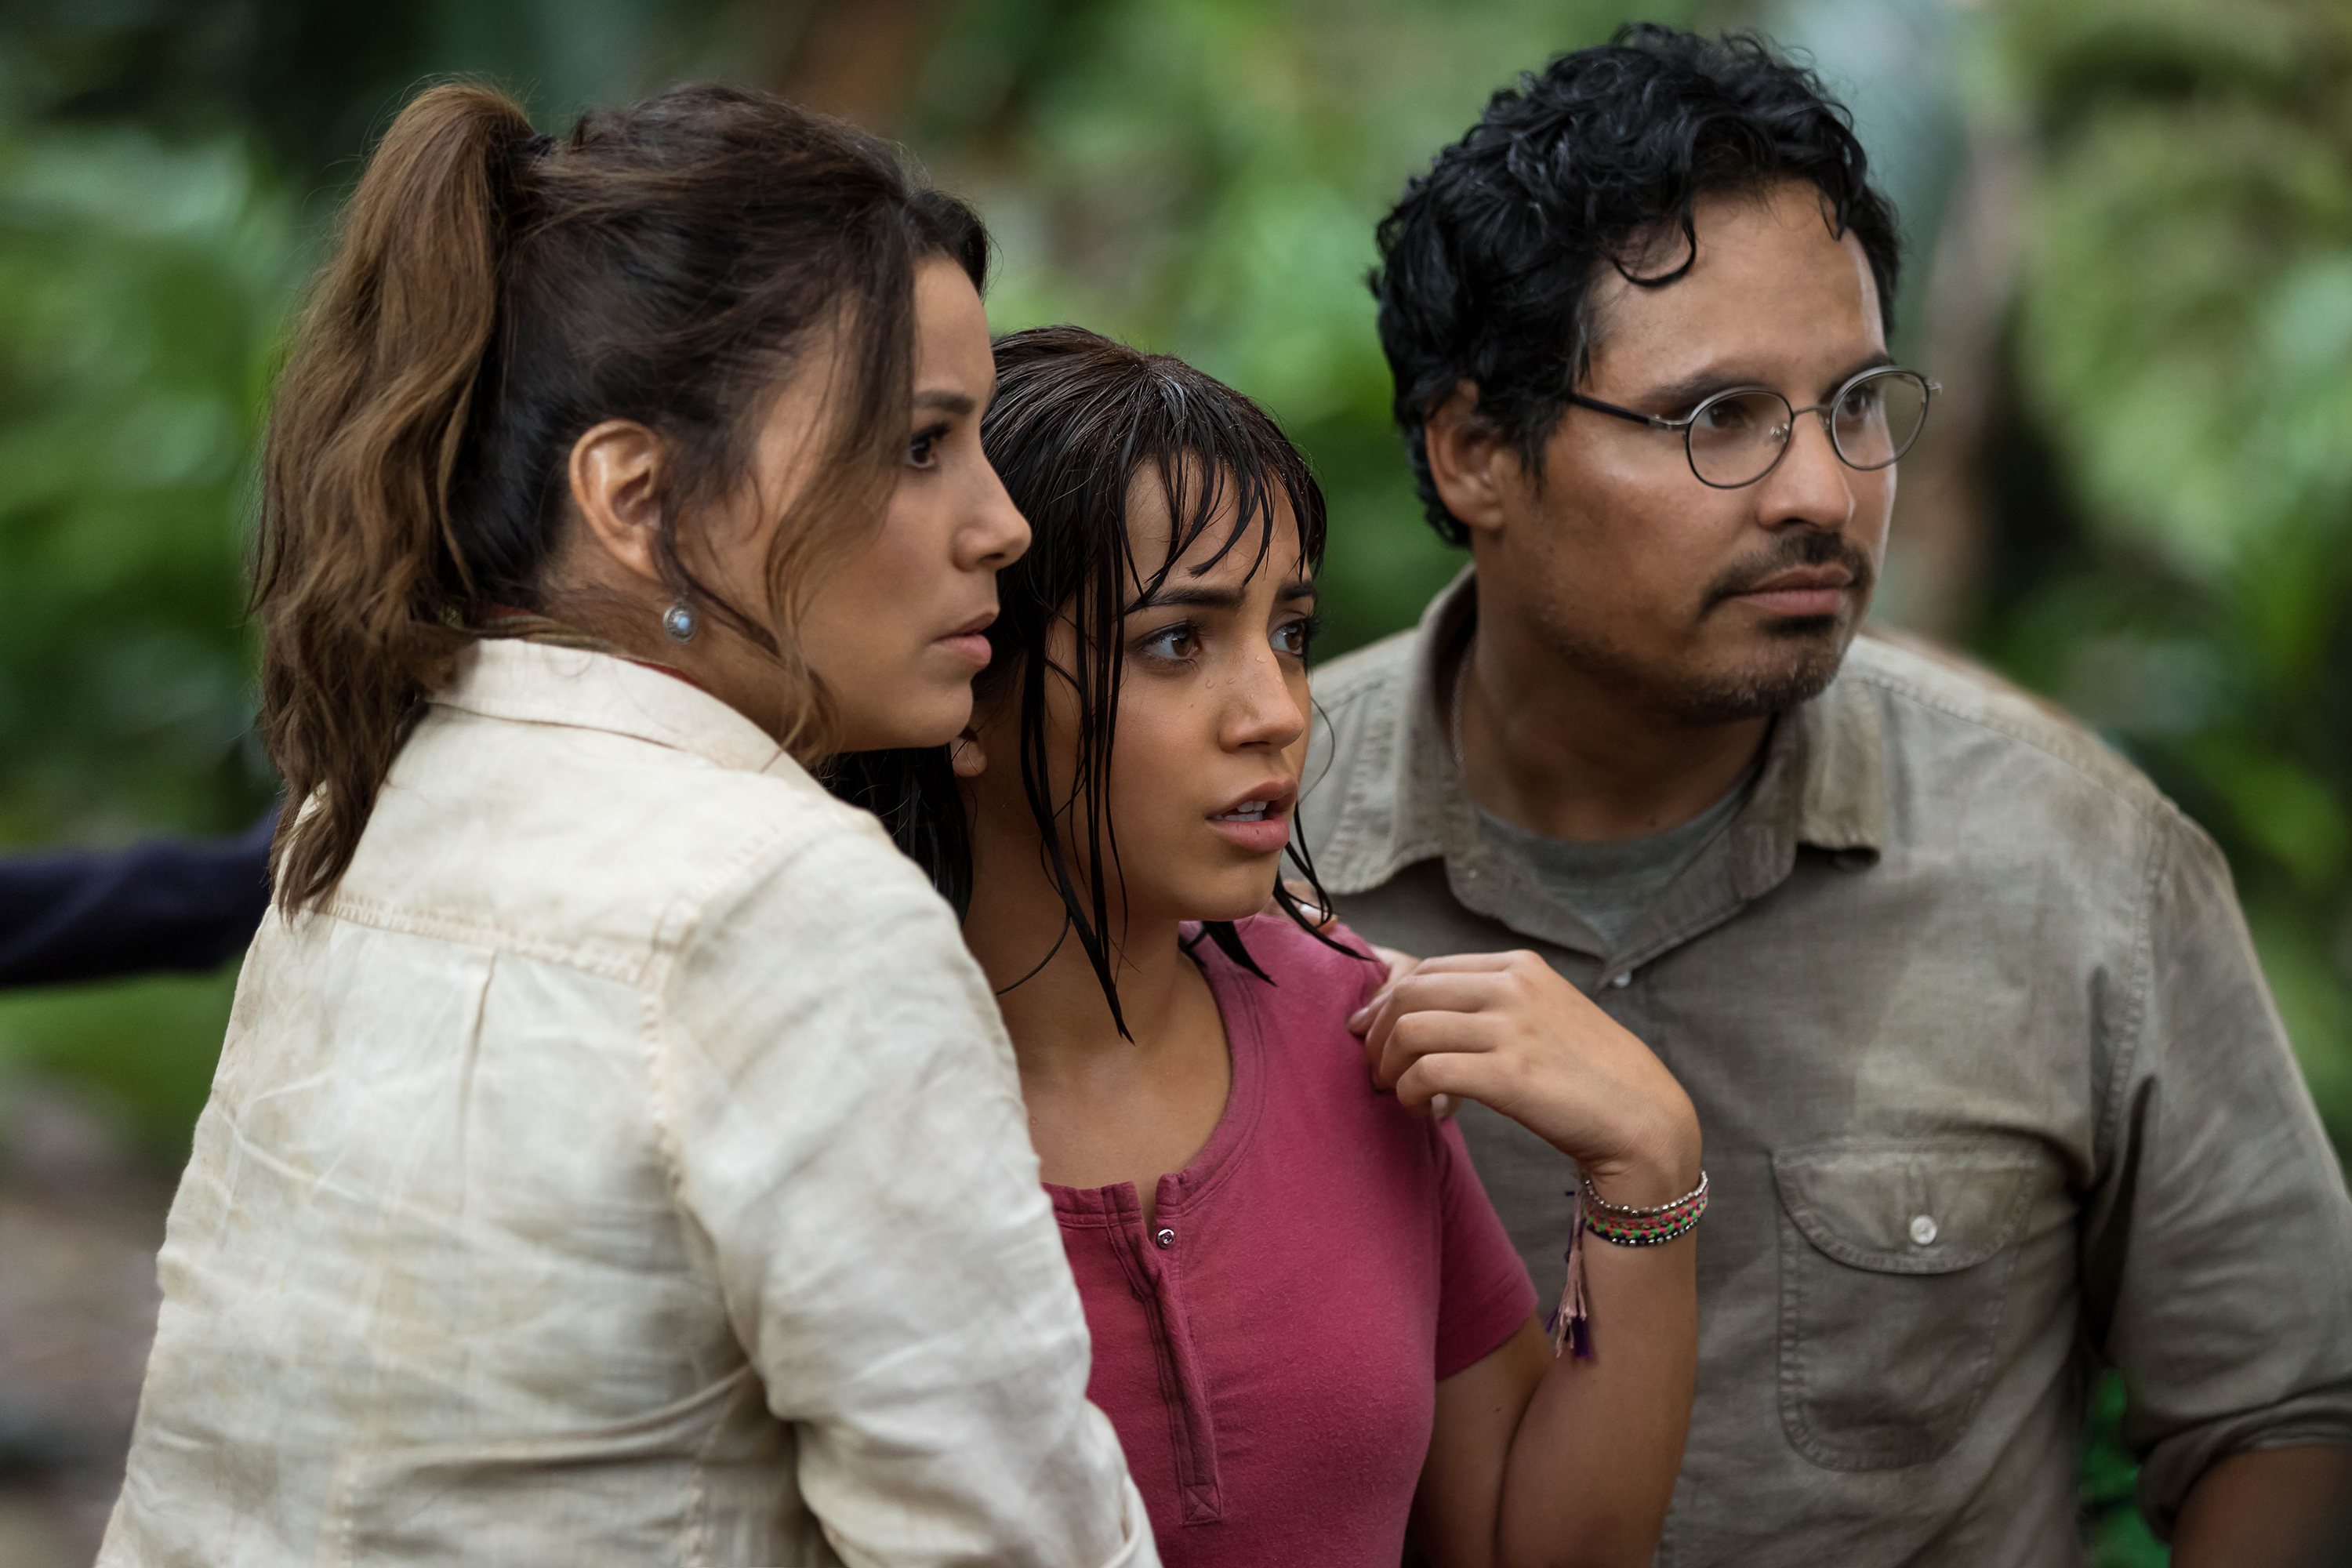 Still 1 for Dora and the Lost City of Gold